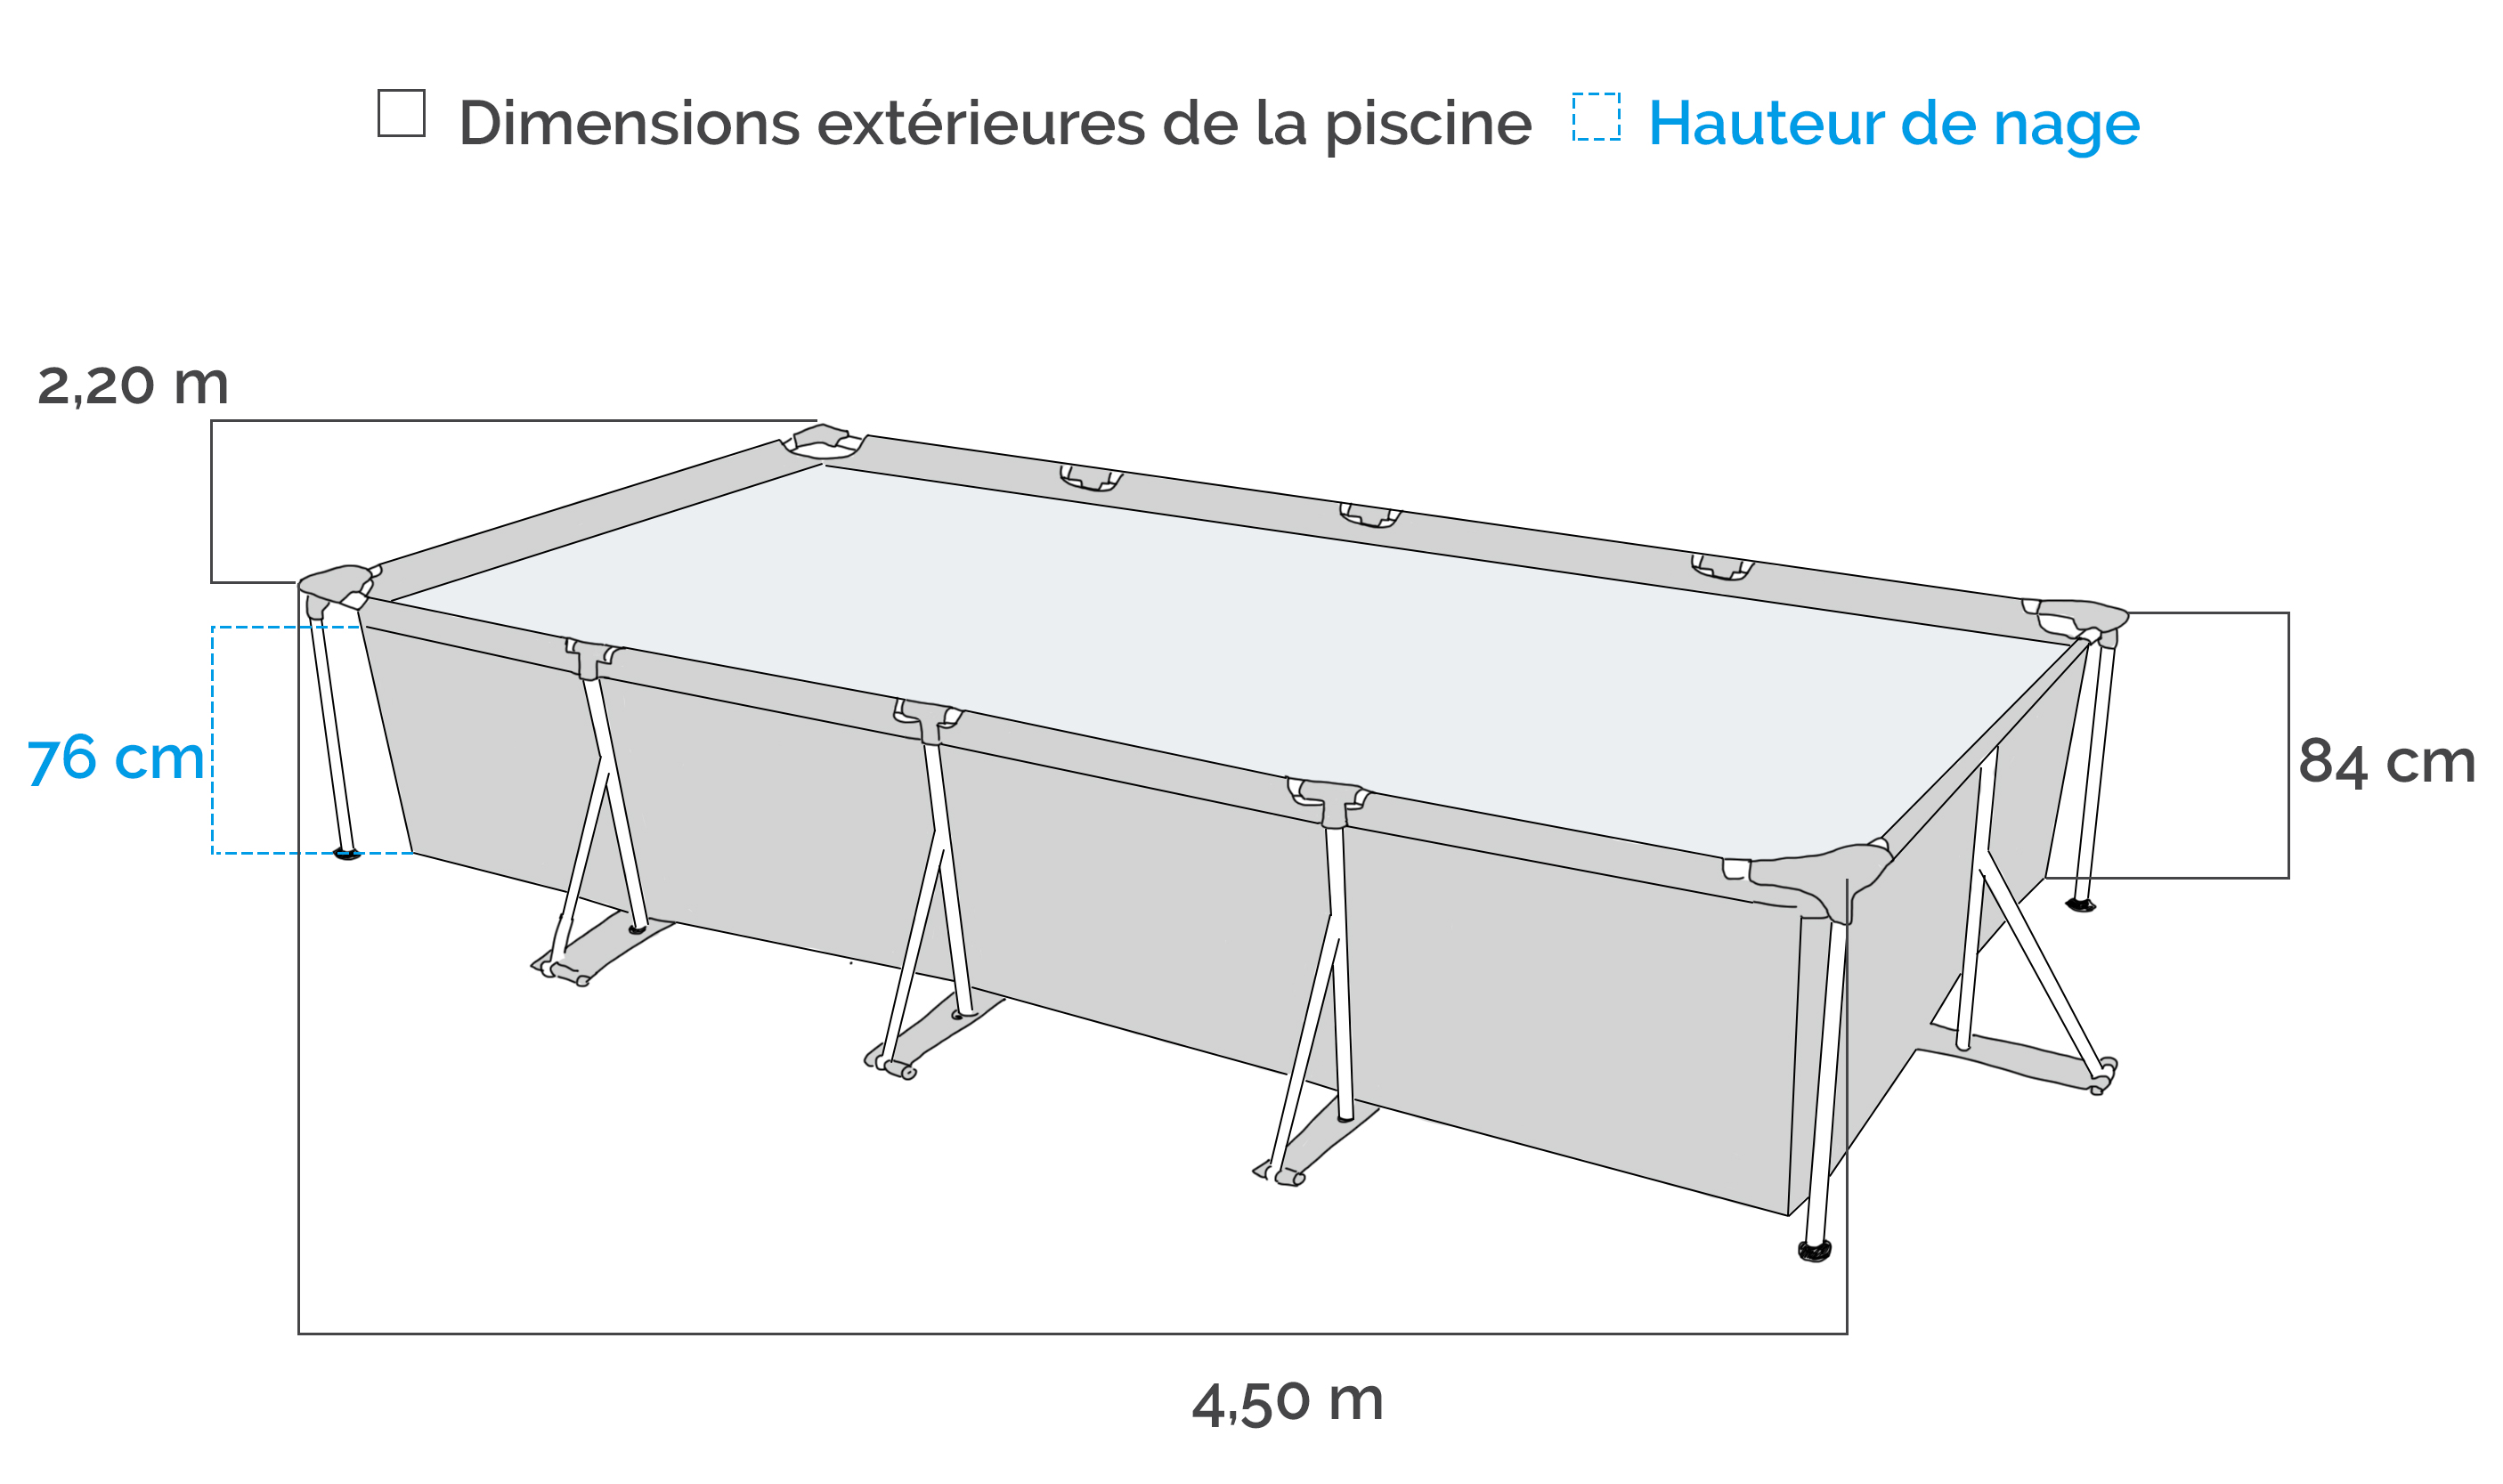 Piscine intex metalframe x x m epurateur for Wohnwand 2 50 m